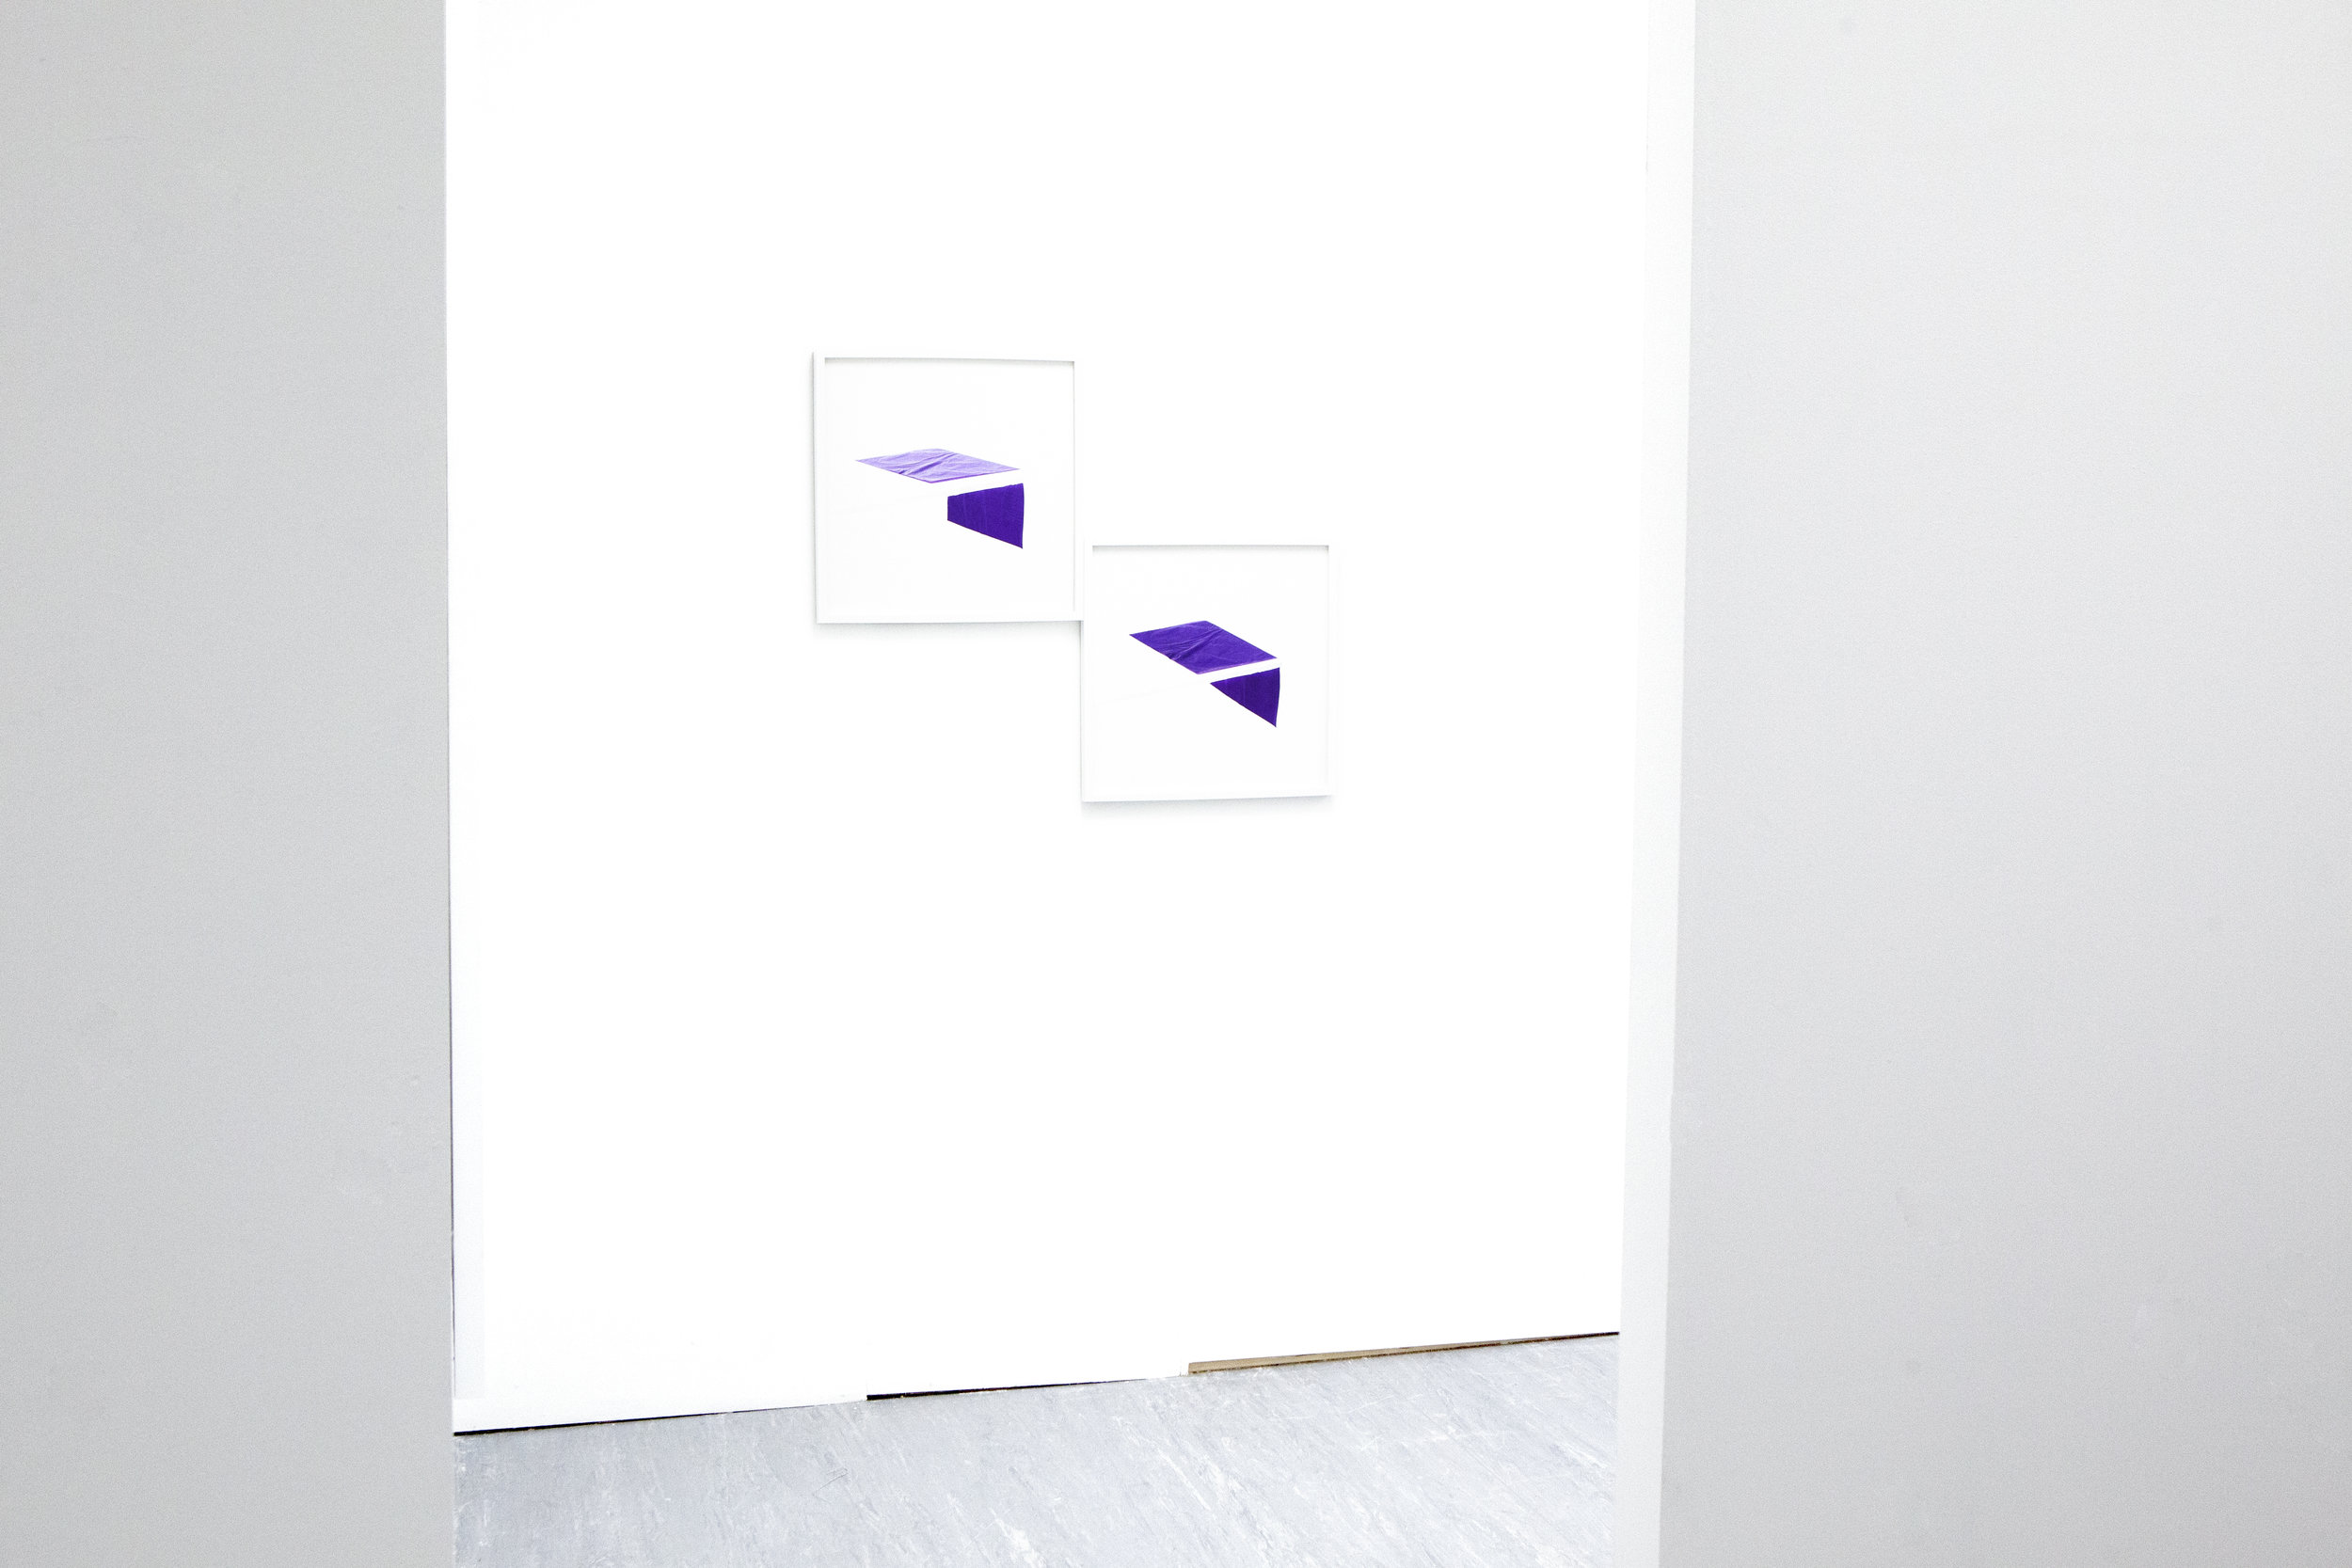 ignaciobarrios_rcadegreeshow_2019_MG_4230.final.jpg